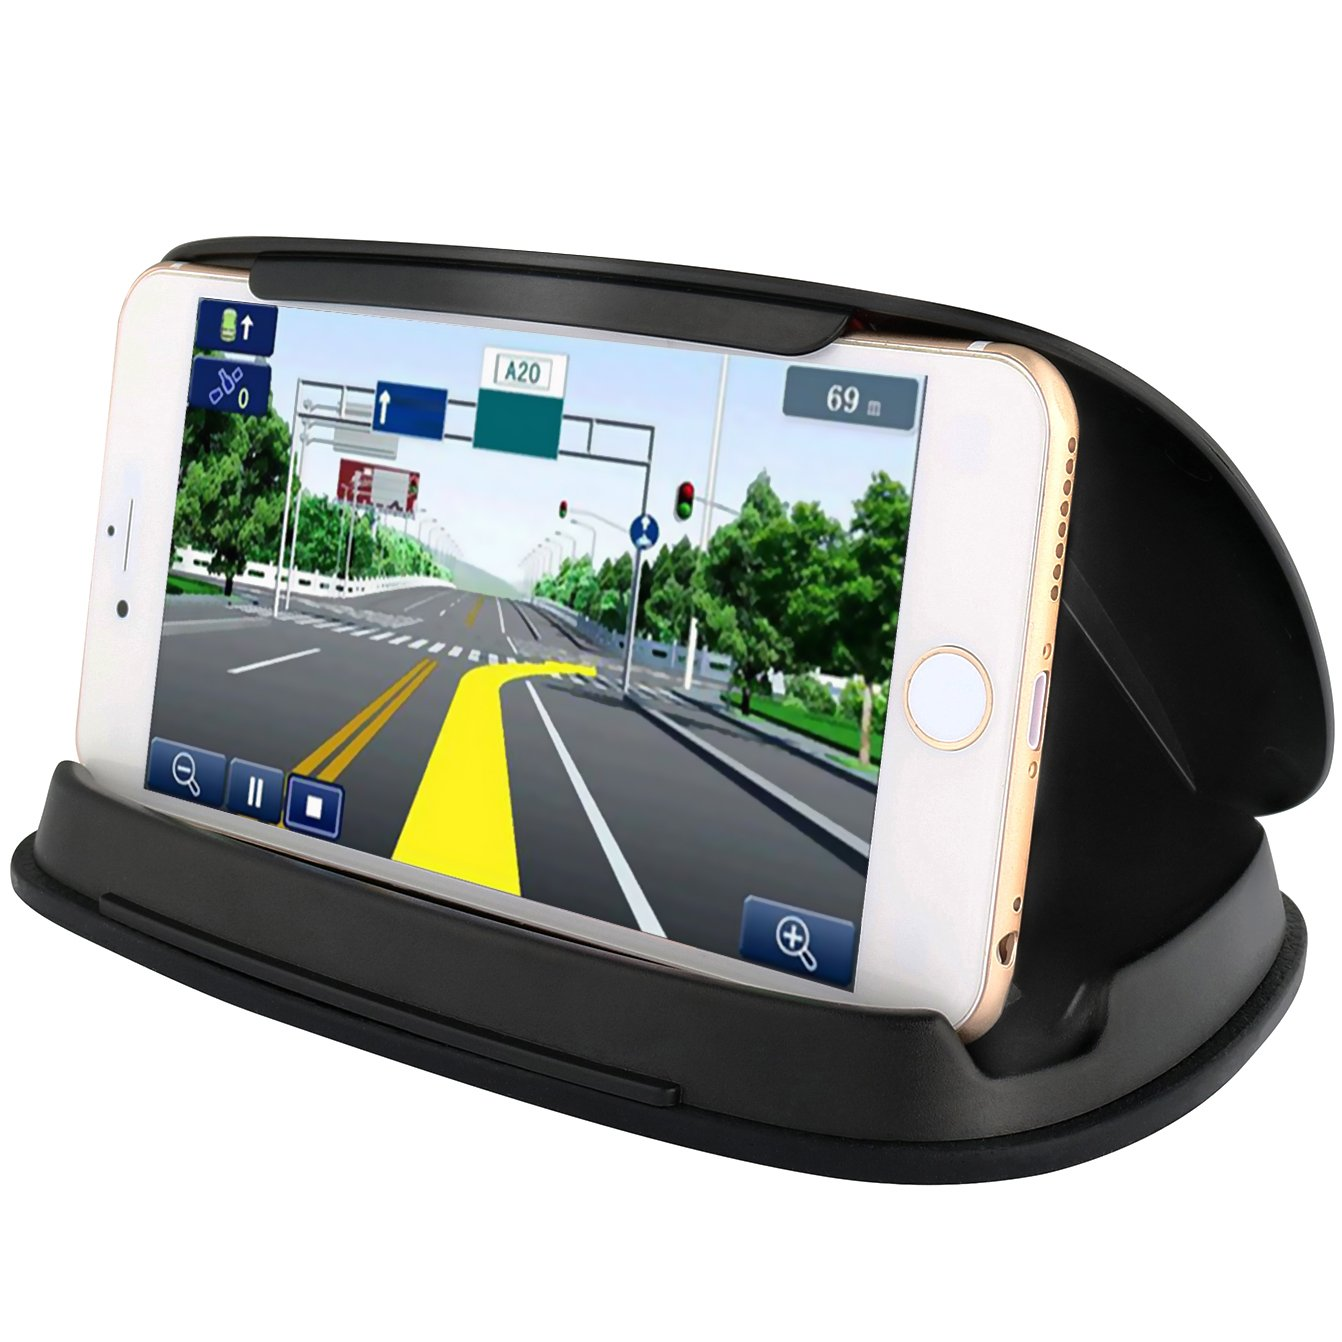 Cell Phone Holder for Car, Car Phone Mounts for iPhone 7 Plus, Dashboard GPS Holder Mounting in Vehicle for Samsung Galaxy S8, and other 3-6.8 Inch Universal Smartphones and GPS - Black